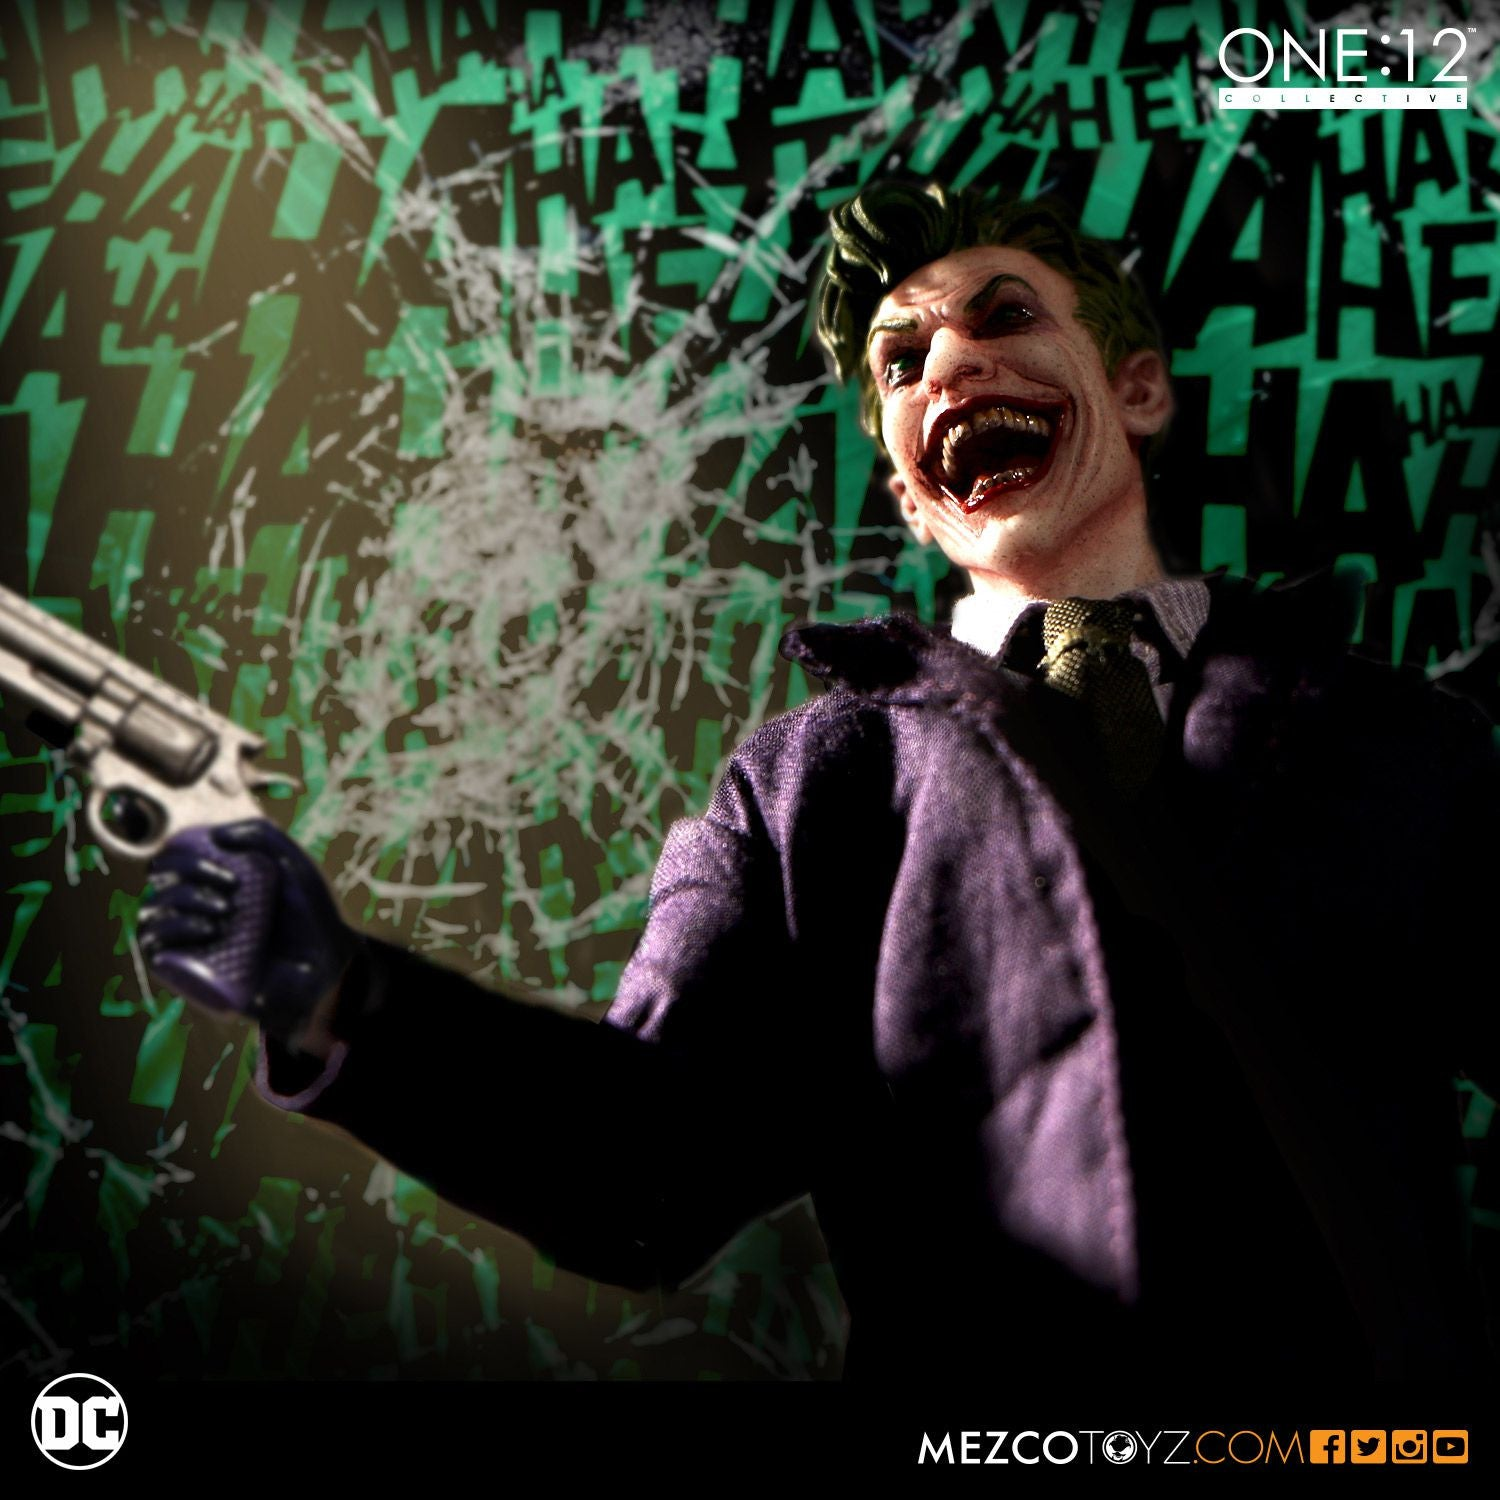 Mezco - One:12 Collective - The Joker - Marvelous Toys - 3